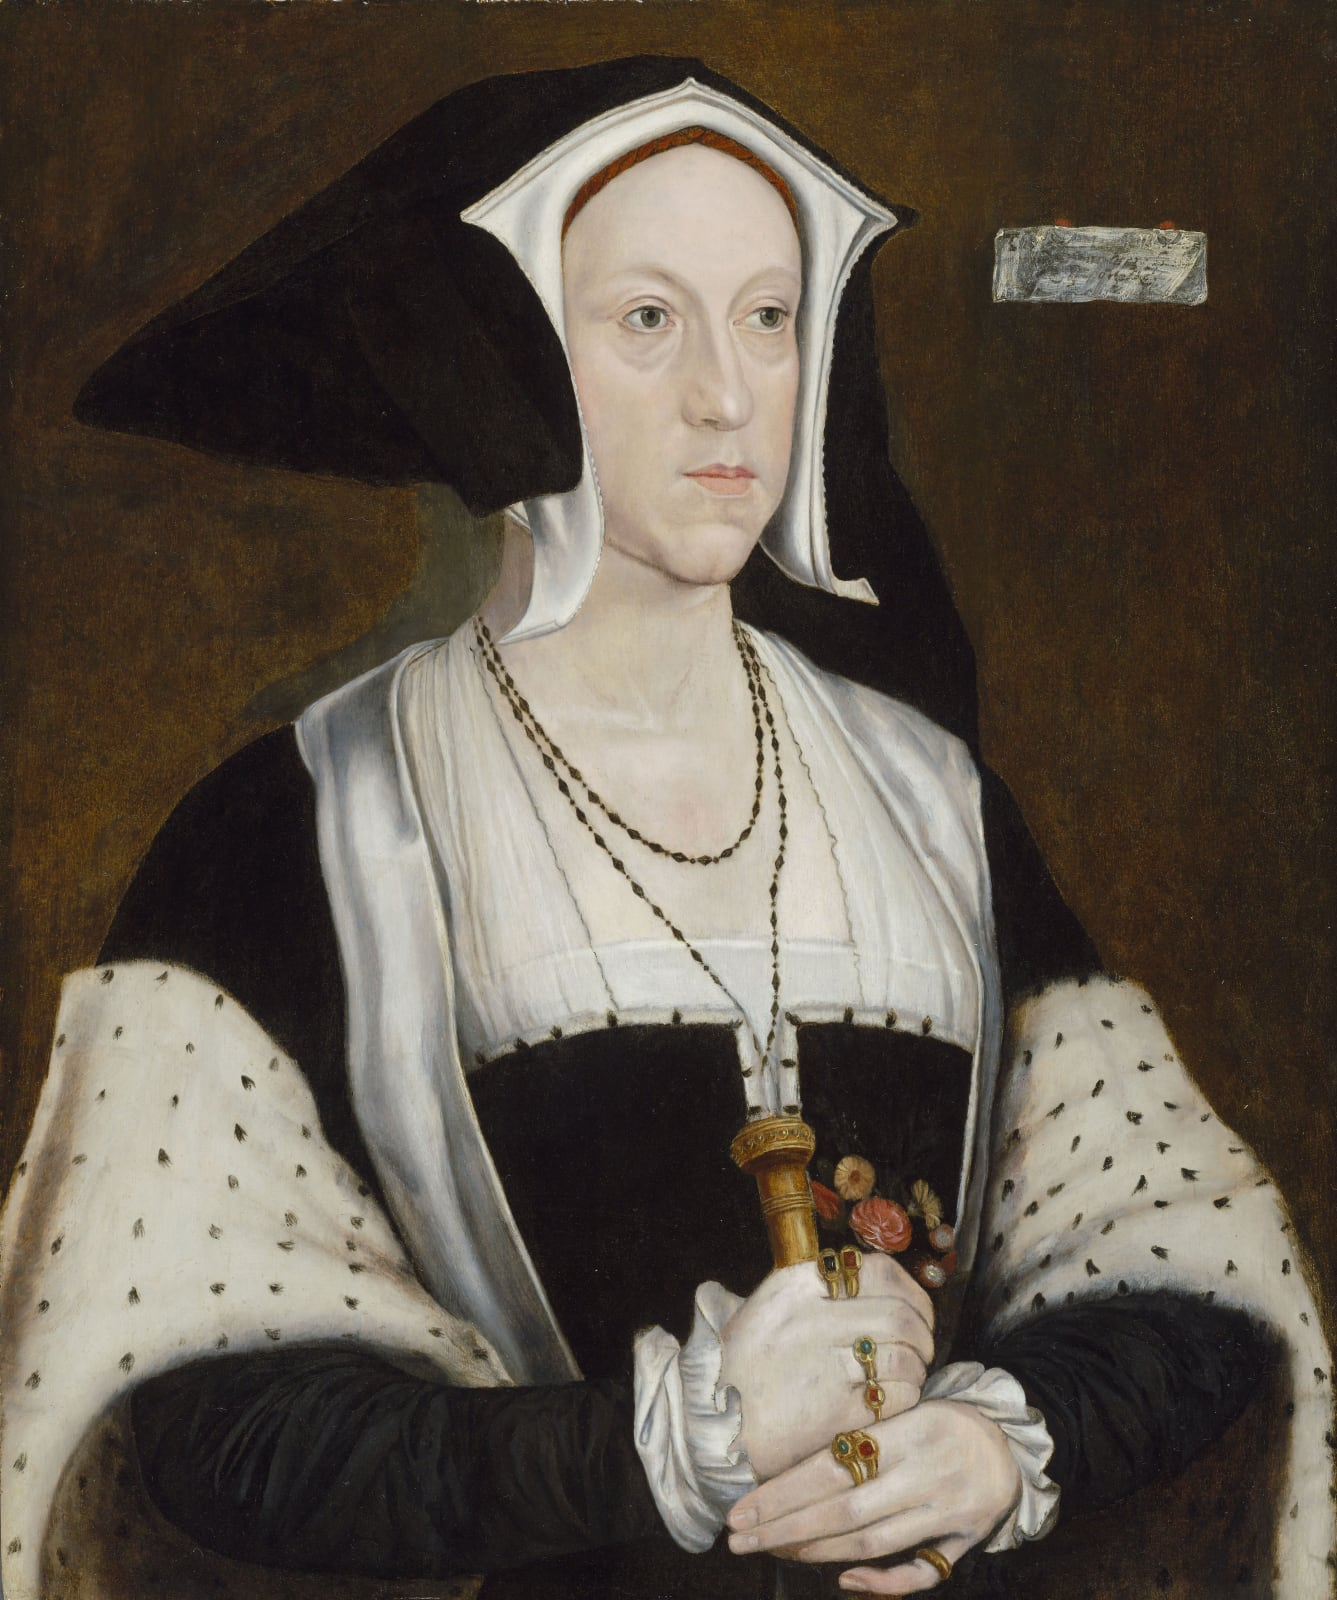 Lady Margaret Wotton, Marchioness of Dorset (1487 – 1541)